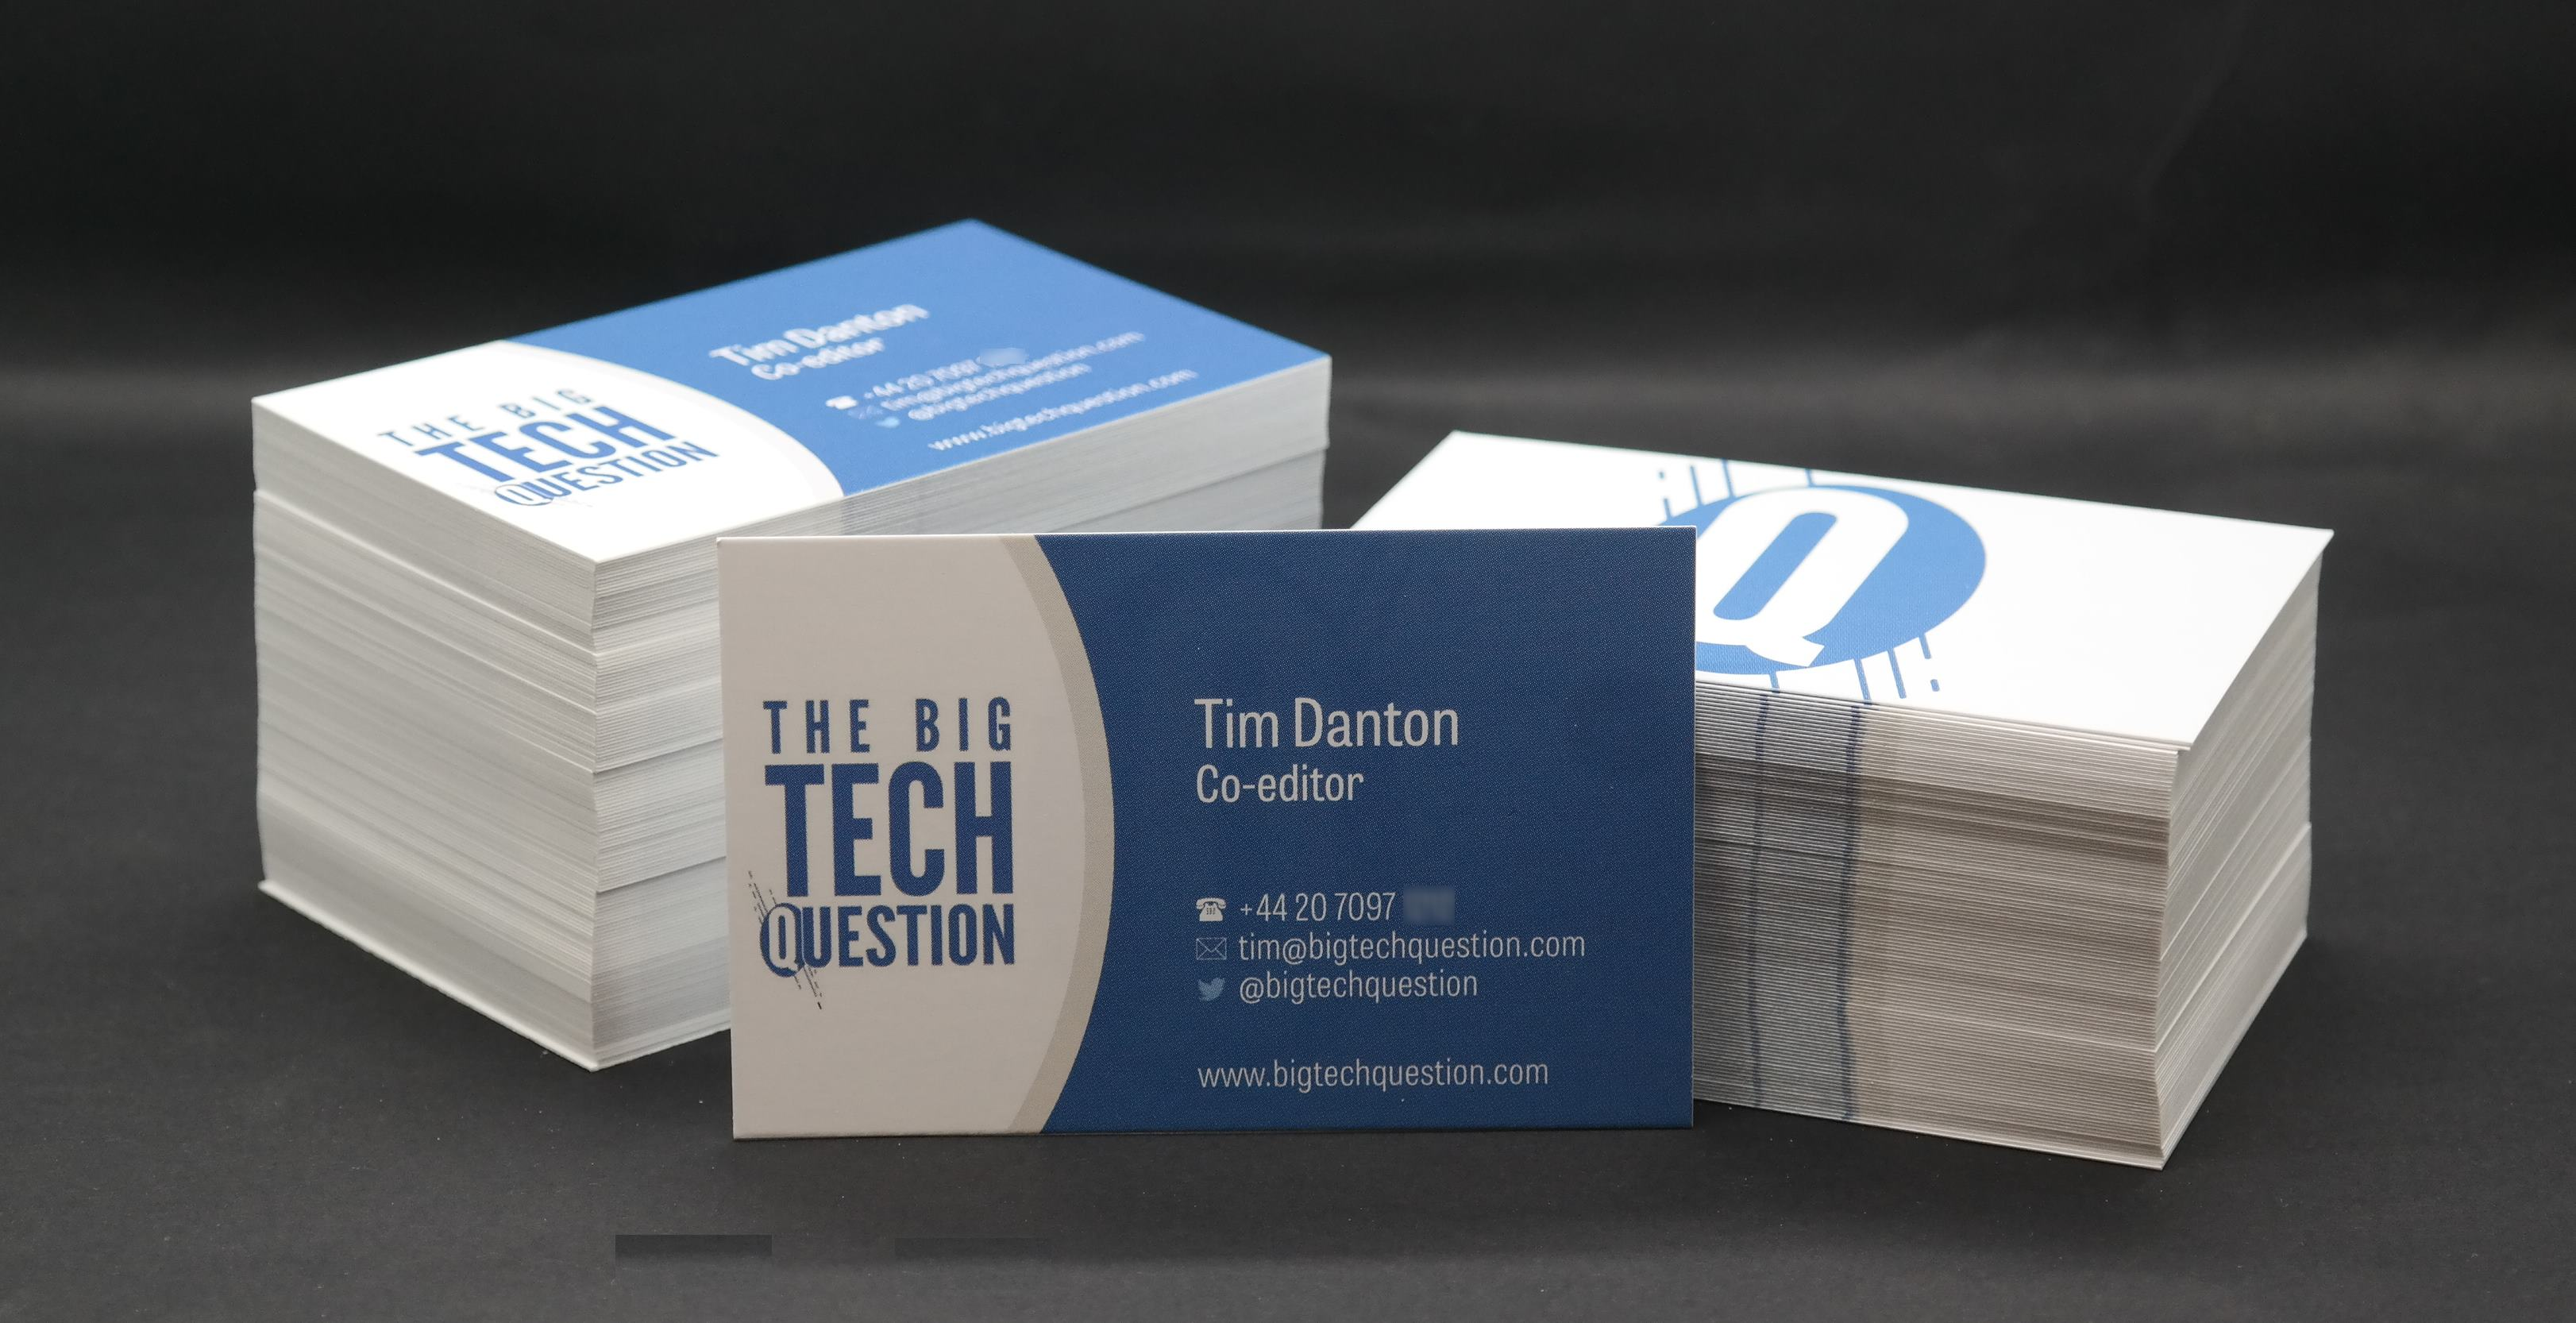 Vistaprint Business Cards Review: Are They As Polished As Its